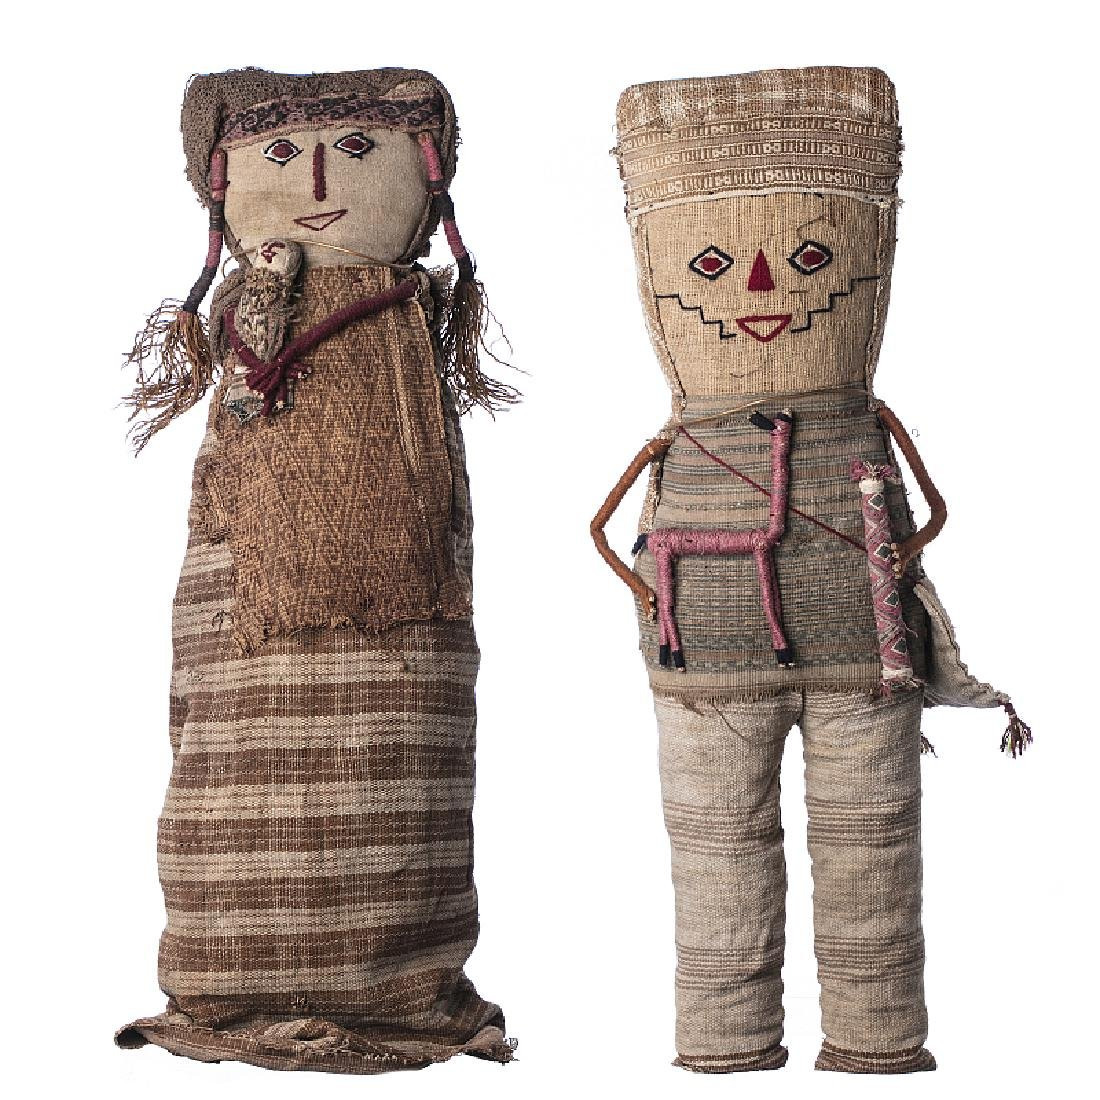 CHANCAY - Two dolls, Peru